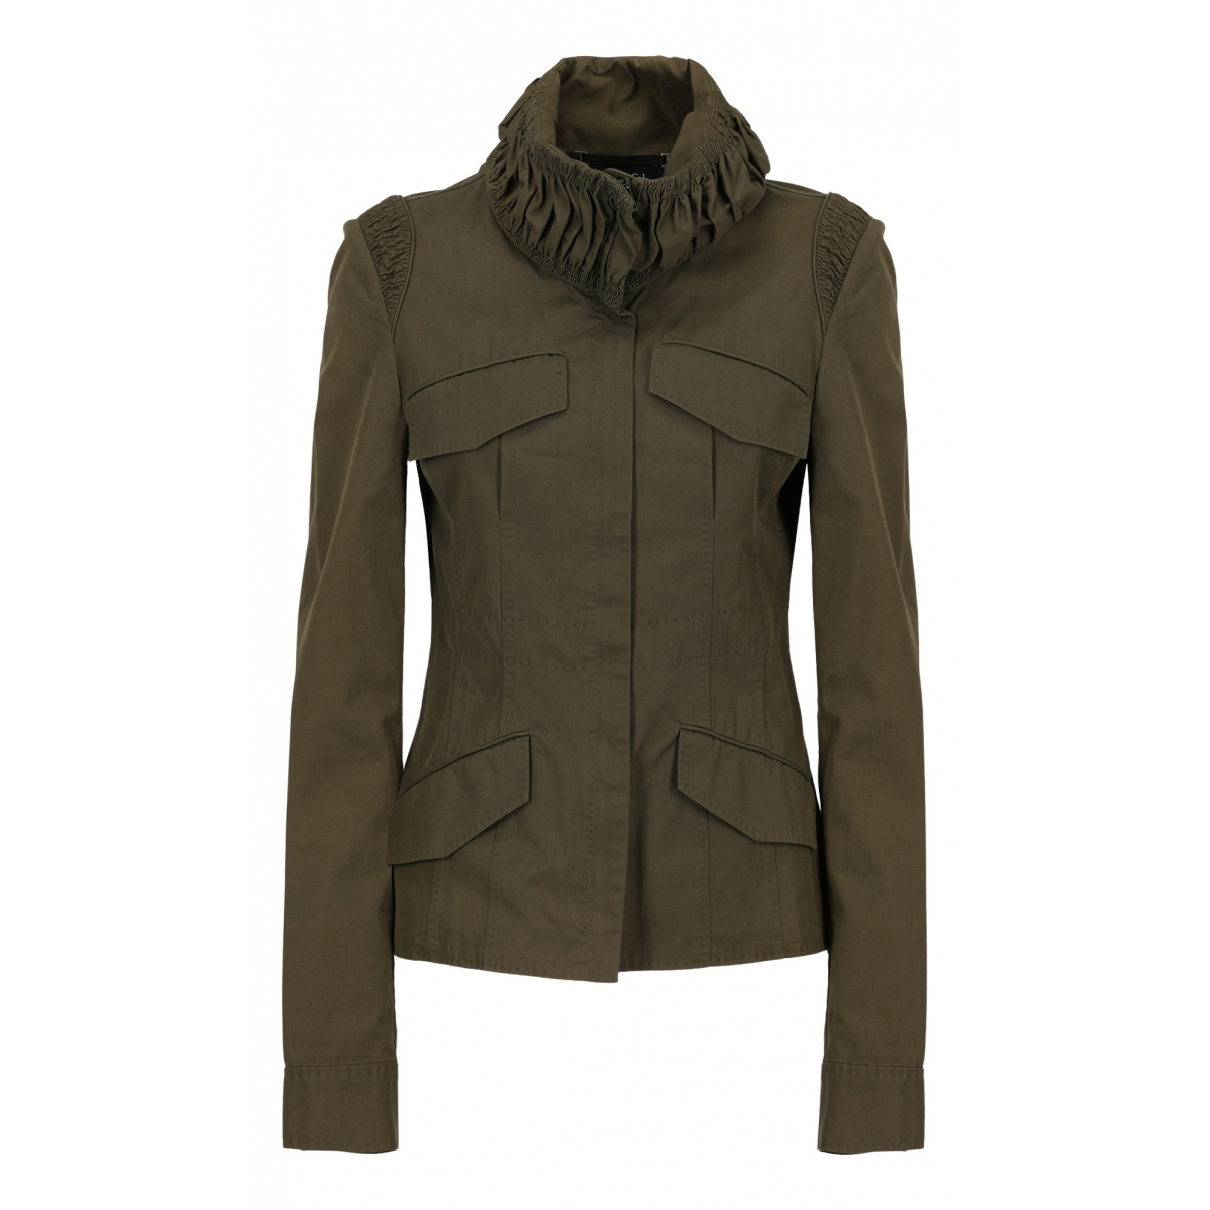 Gucci N Green Cotton jacket for Women 44 IT